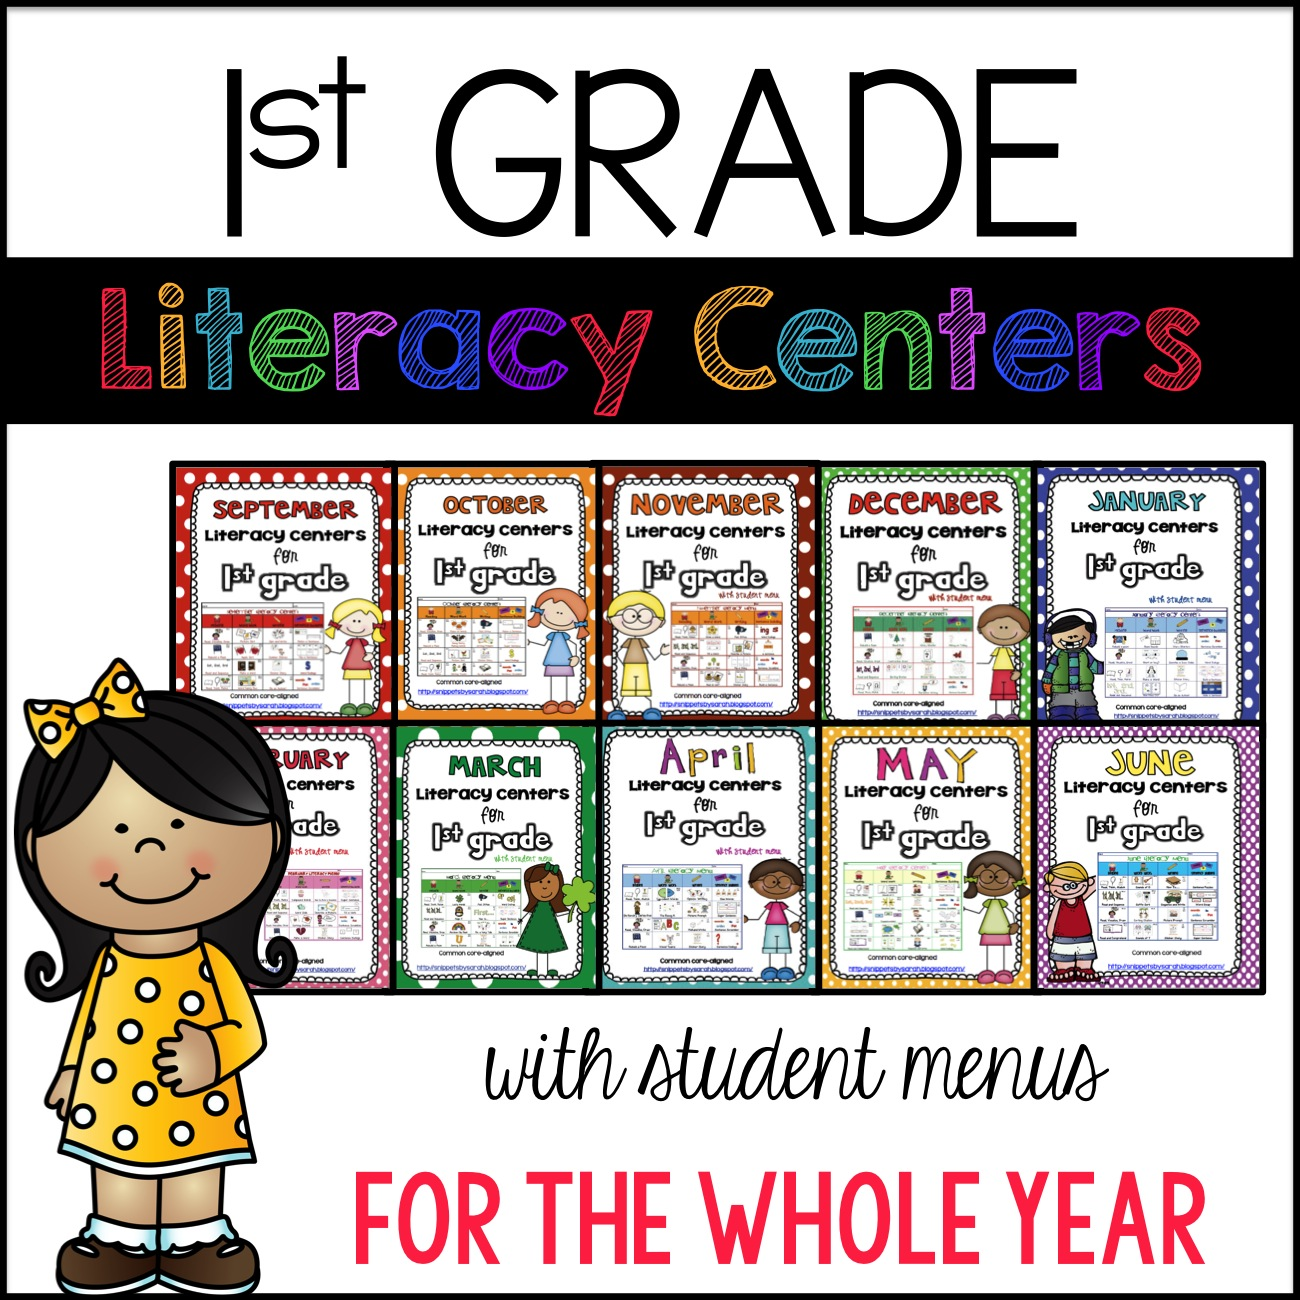 Sarah S First Grade Snippets 1st Grade Literacy Center Bundle